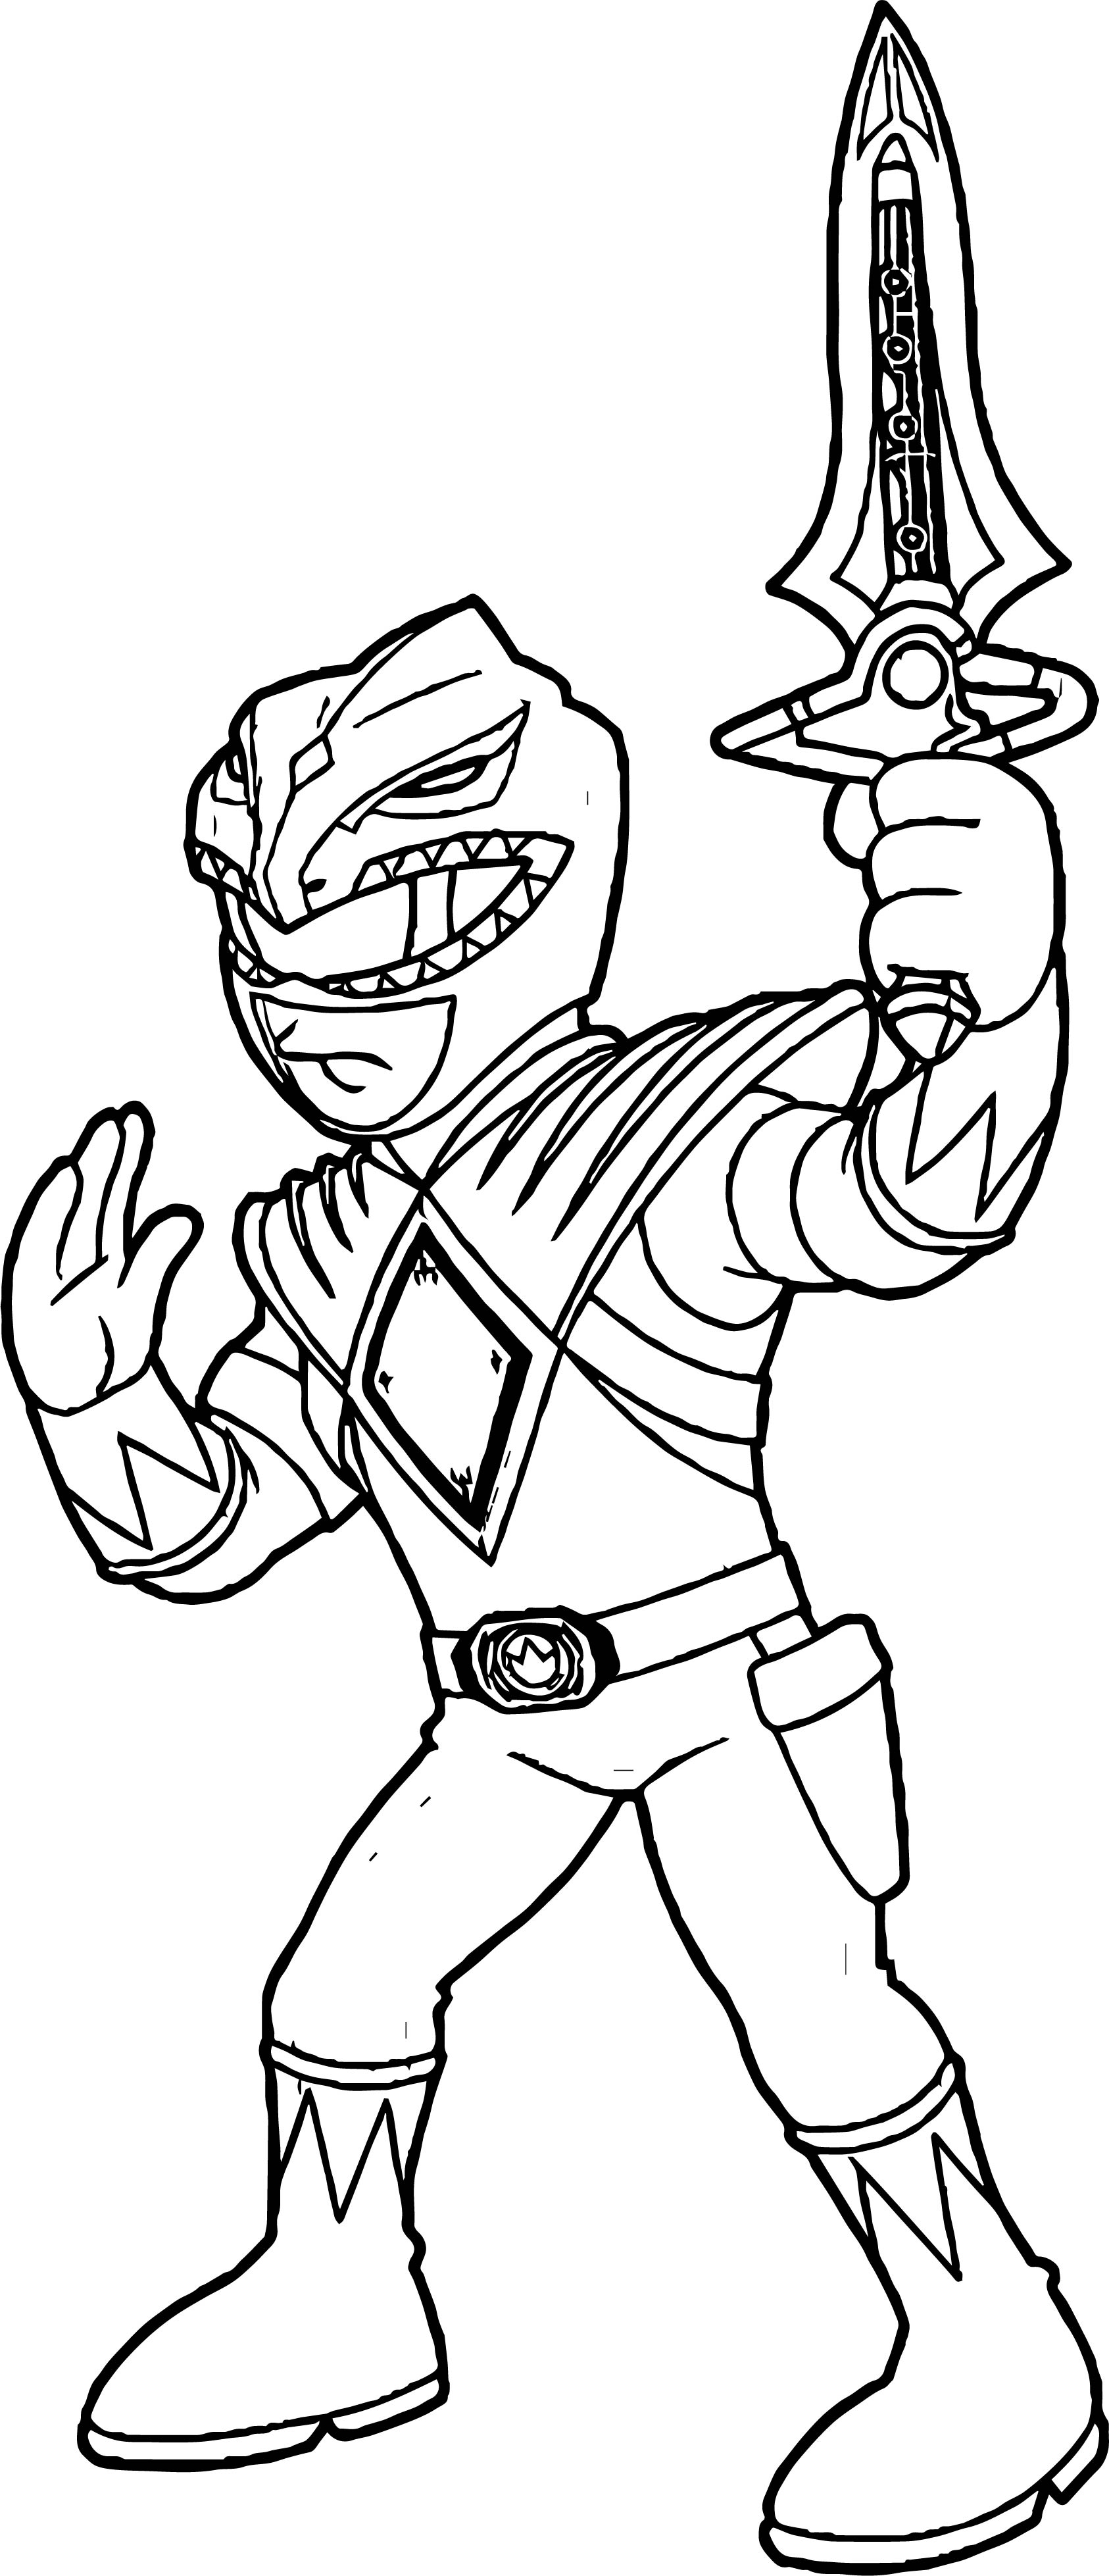 power ranger coloring pages - power rangers green ranger coloring page